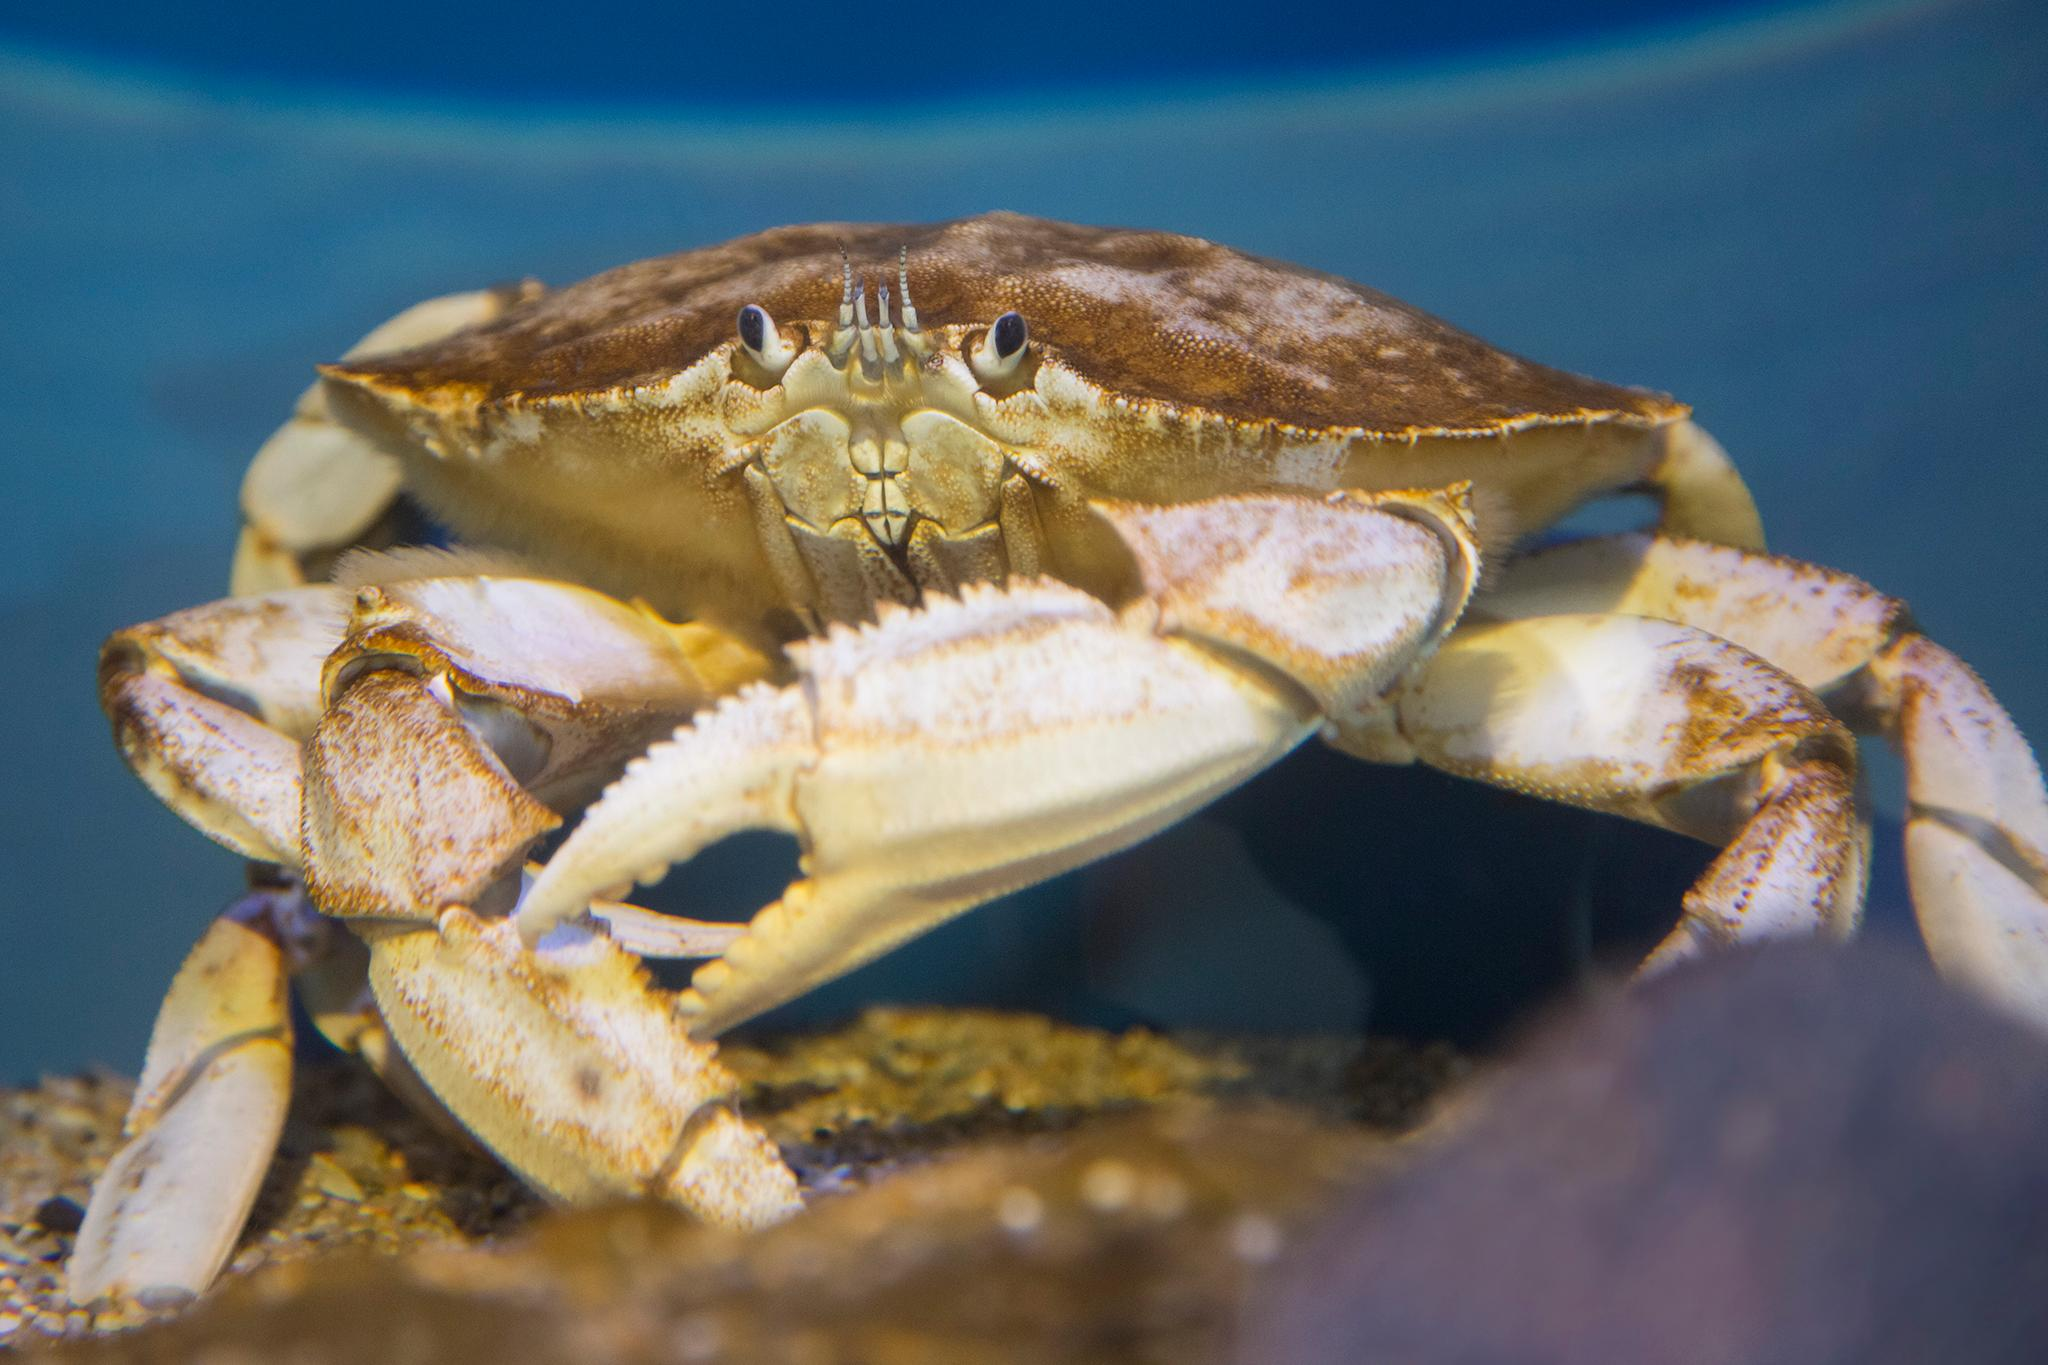 Two all-white Dungeness crab caught off the Central Oregon Coast have been spared from boiling water and butter and put on display at the Oregon Coast Aquarium instead. (Courtesy Oregon Coast Aquarium)